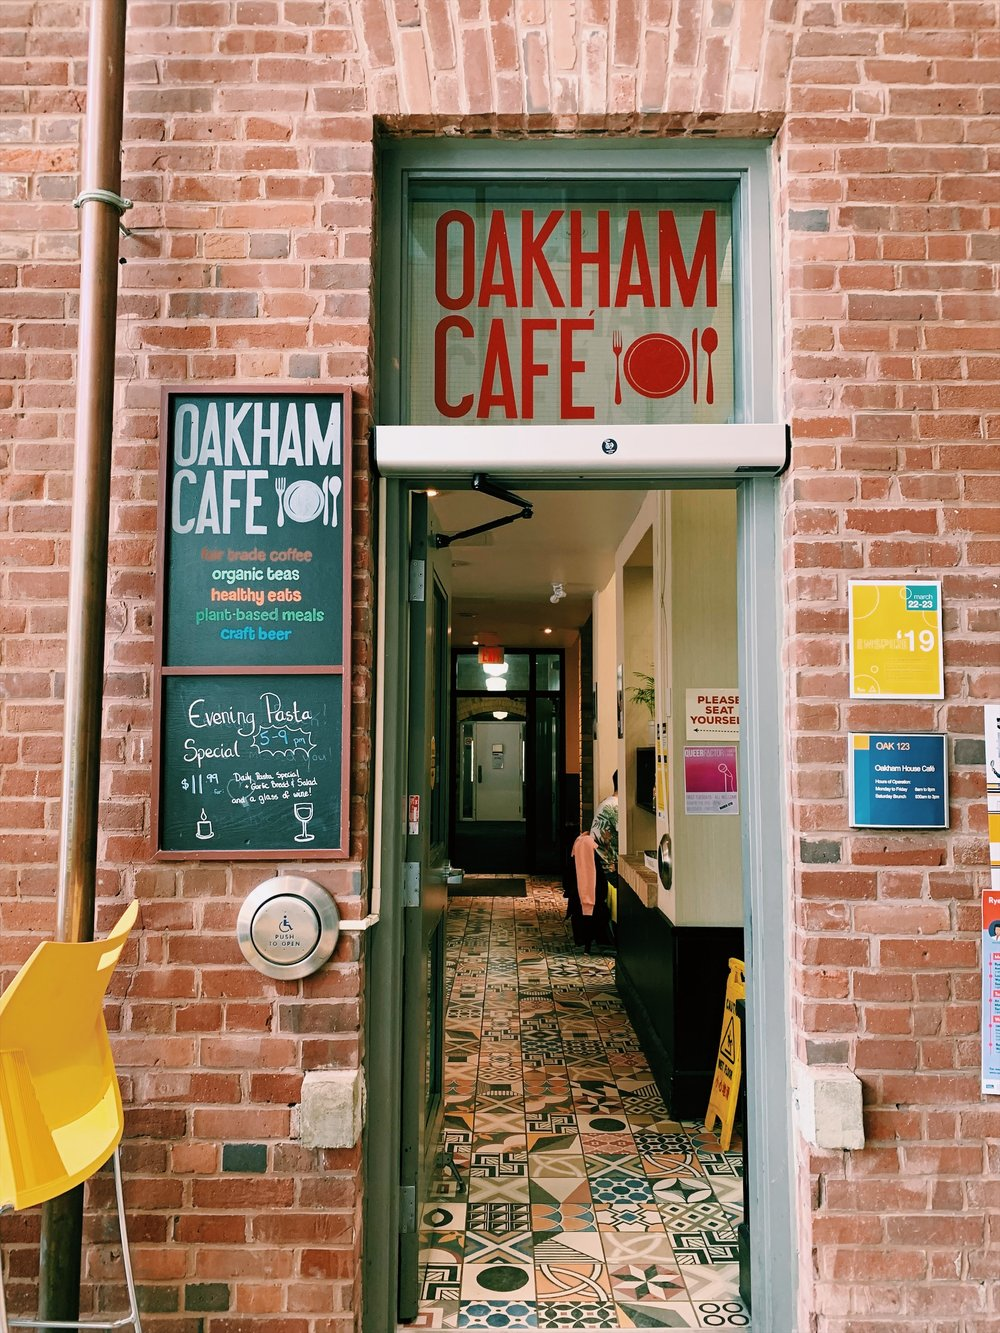 Oakham Café in the Ryerson Student Centre offers a cozy environment with mouth-watering food options. (CanCulture/Akanksha Dhingra)